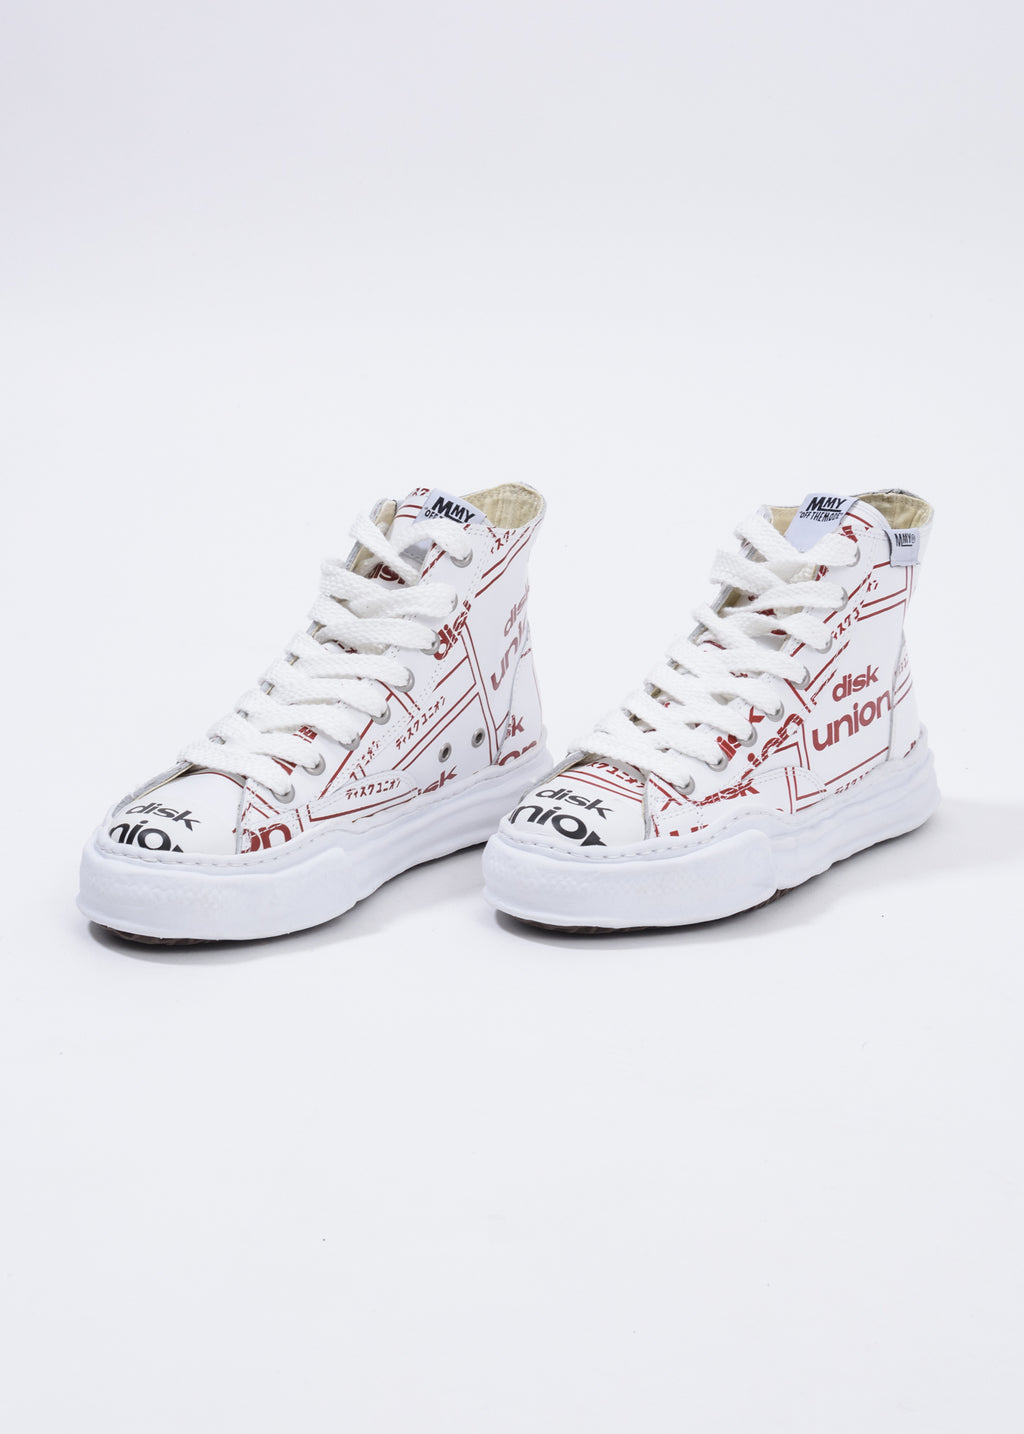 White Disk Union Printed Original Sole High Top Sneaker